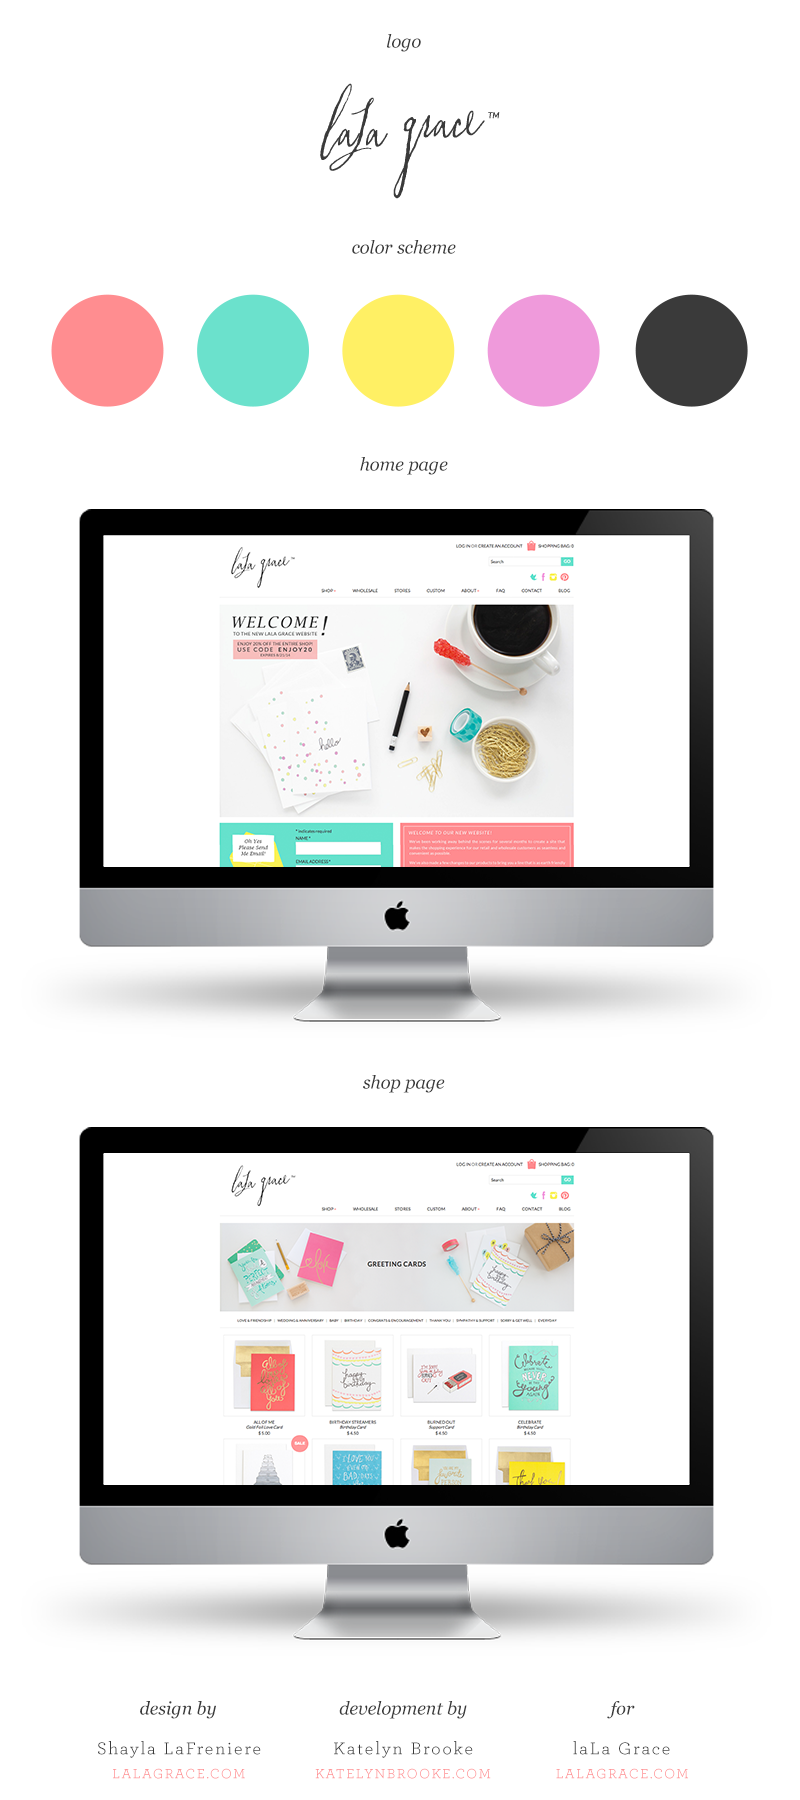 laLa Grace website, designed by Shayla LaFreniere with web development by Katelyn Brooke || katelynbrooke.com